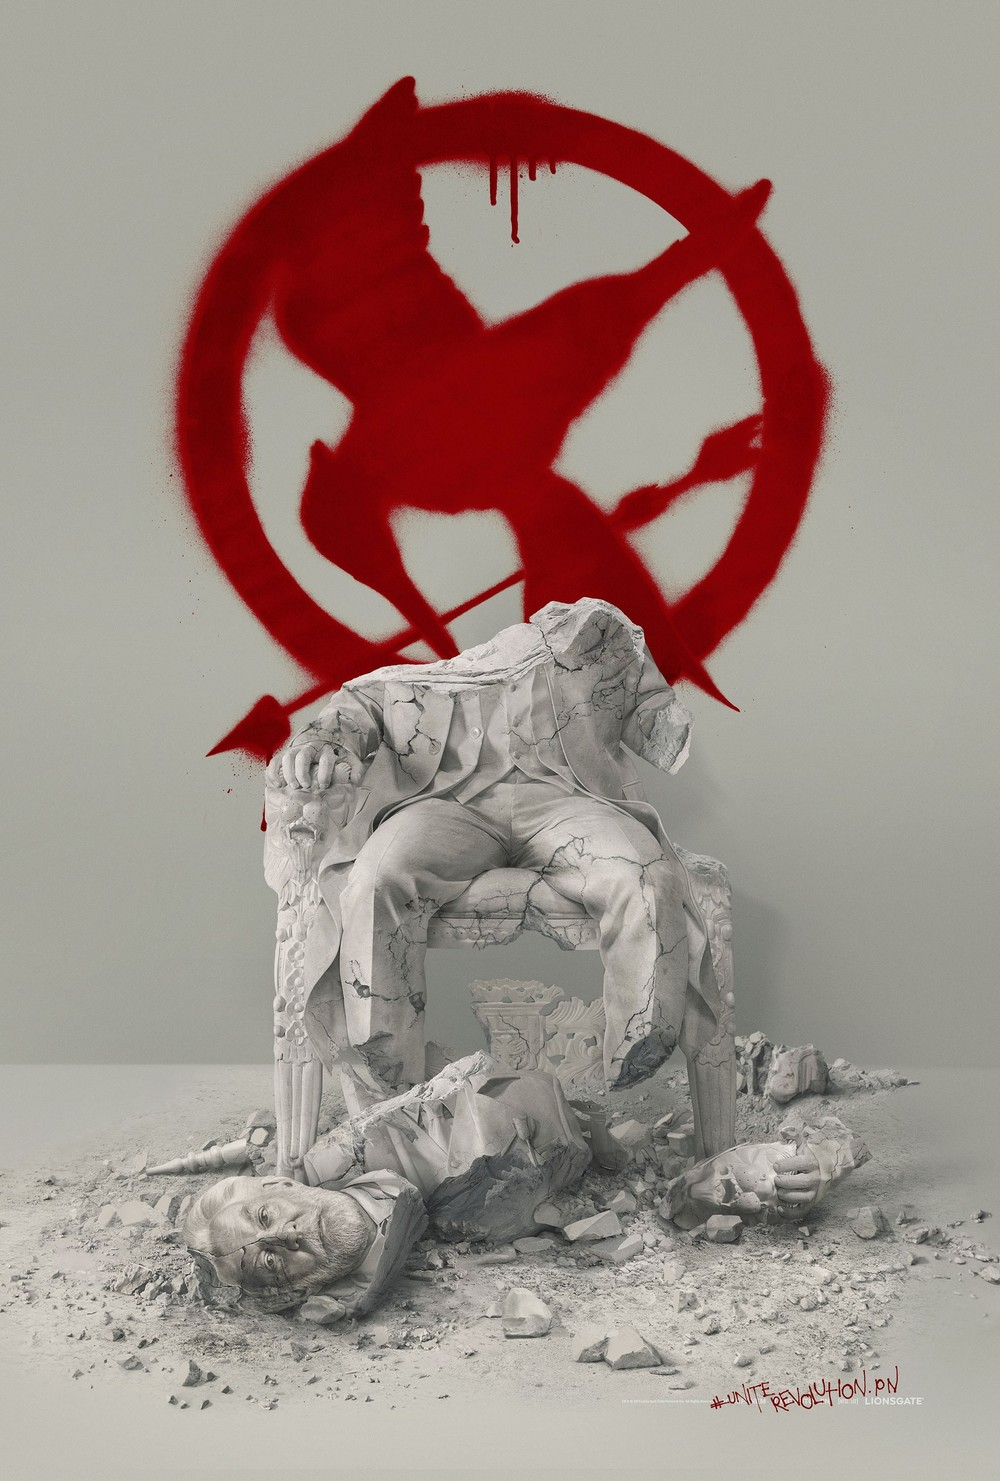 Striking teaser posters for Mockingjay Part 2. I love the toppled Snow statue here, and the character teasers, if you can even call them that, take an interesting approach. I doubt they would work by themselves, but the concept flourishes when displayed together.